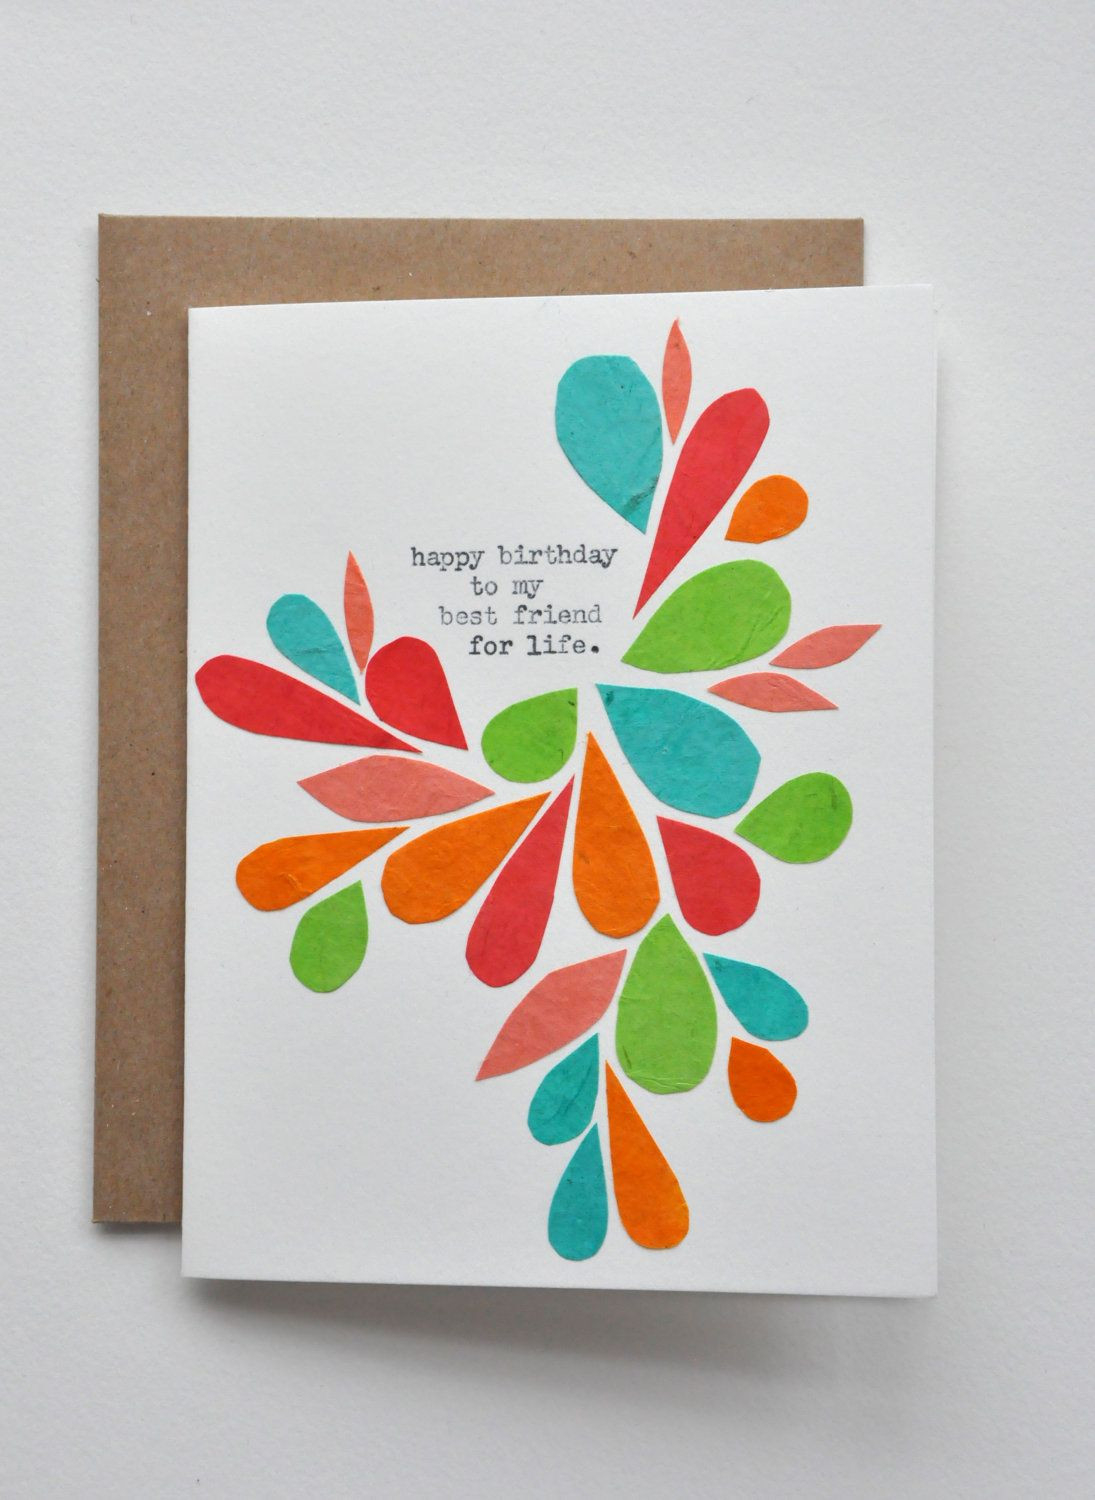 Card Making Ideas For Friends Birthday 96 Ideas For Birthday Cards For Best Friends Birthday Cards Cool